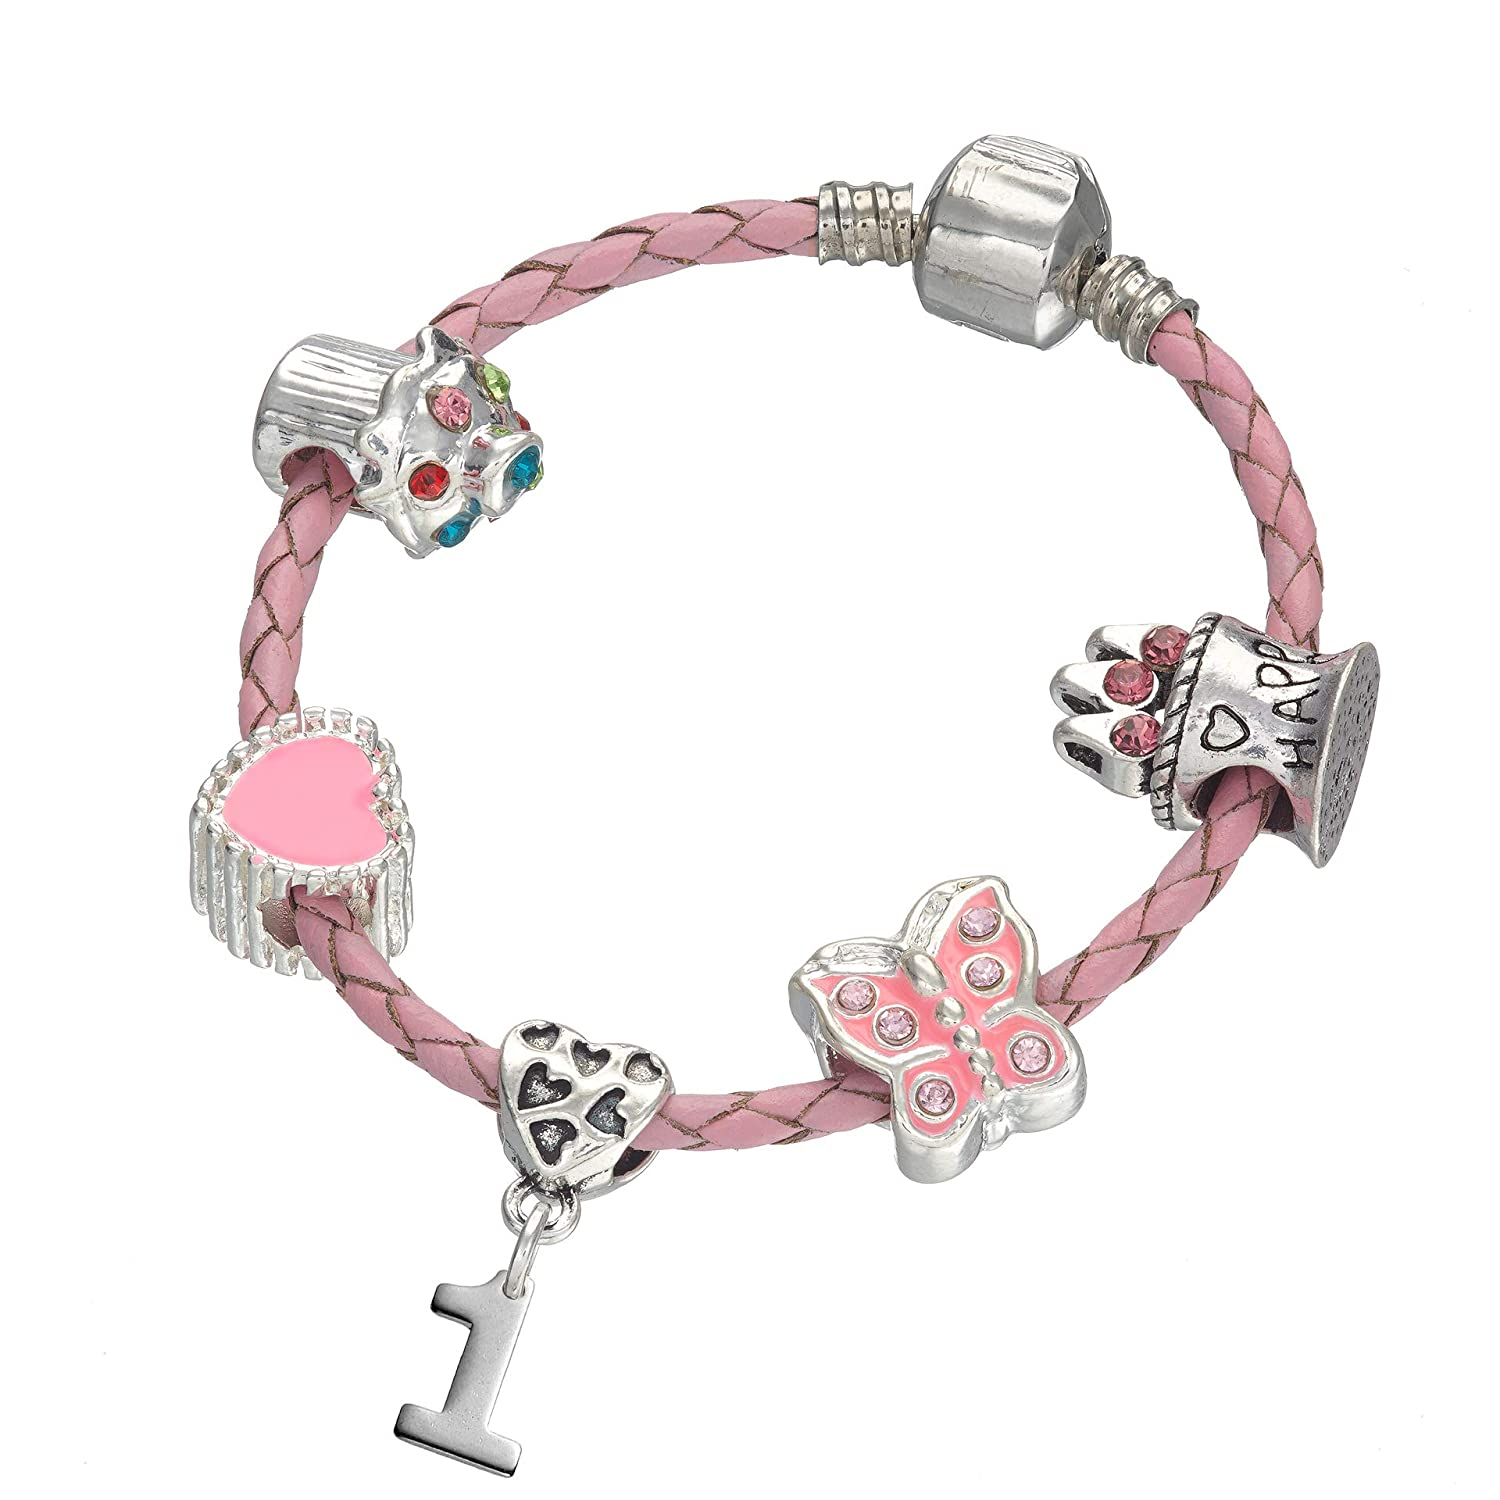 Girls /& Childrens Birthday Gift Jewellery Childrens Pink Leather Happy 1st Birthday Charm Bracelet With Lovely Jewellery Hut Gift Pouch